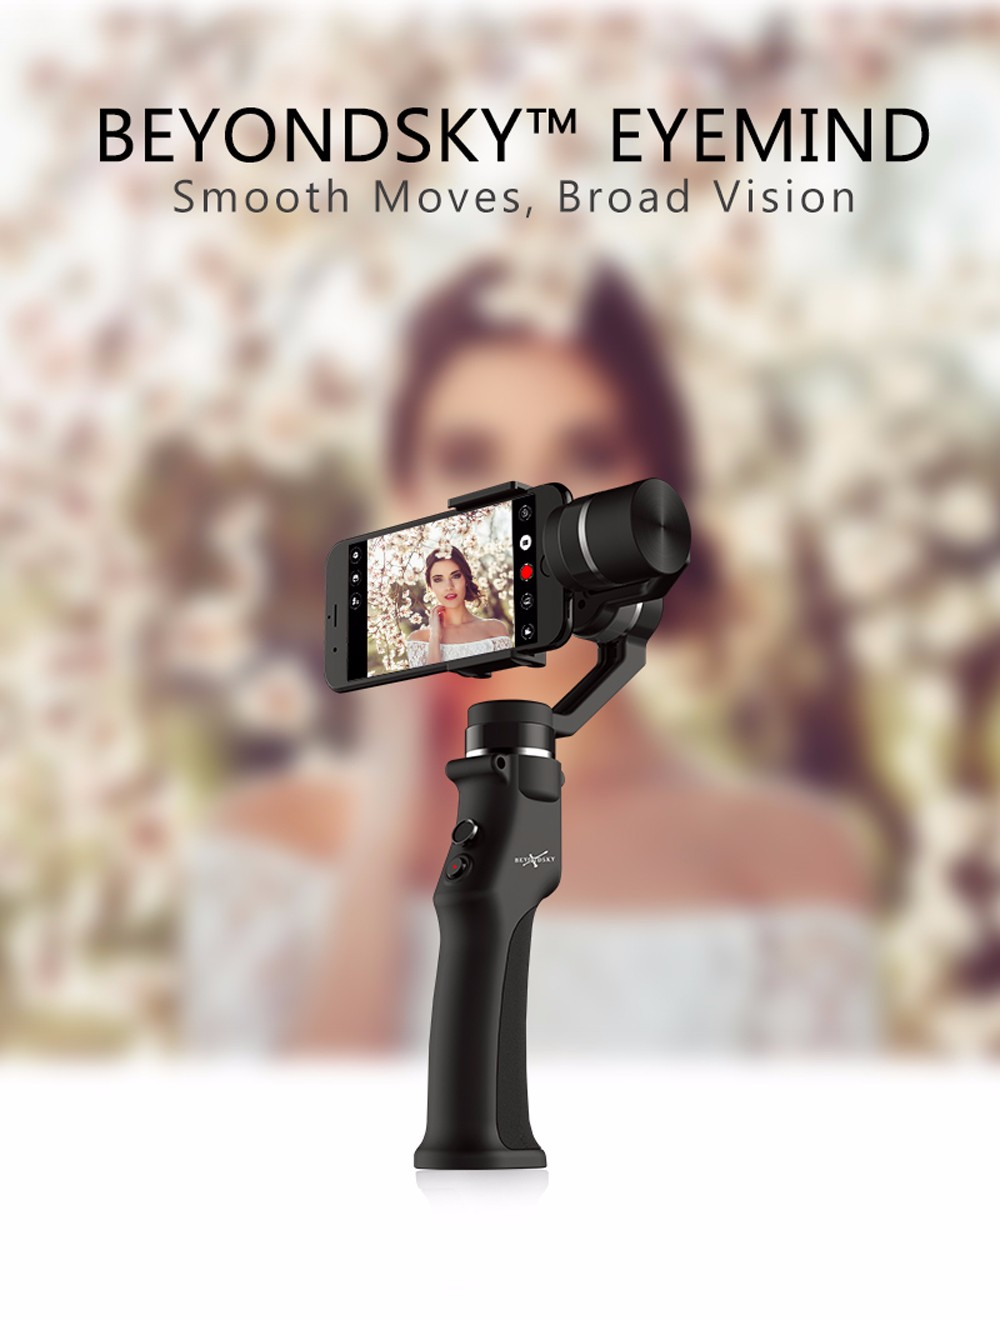 Beyondsky Eyemind Intelligent Handheld Gimbal Suitable for Phones with Width of 55 - 80mm- Black